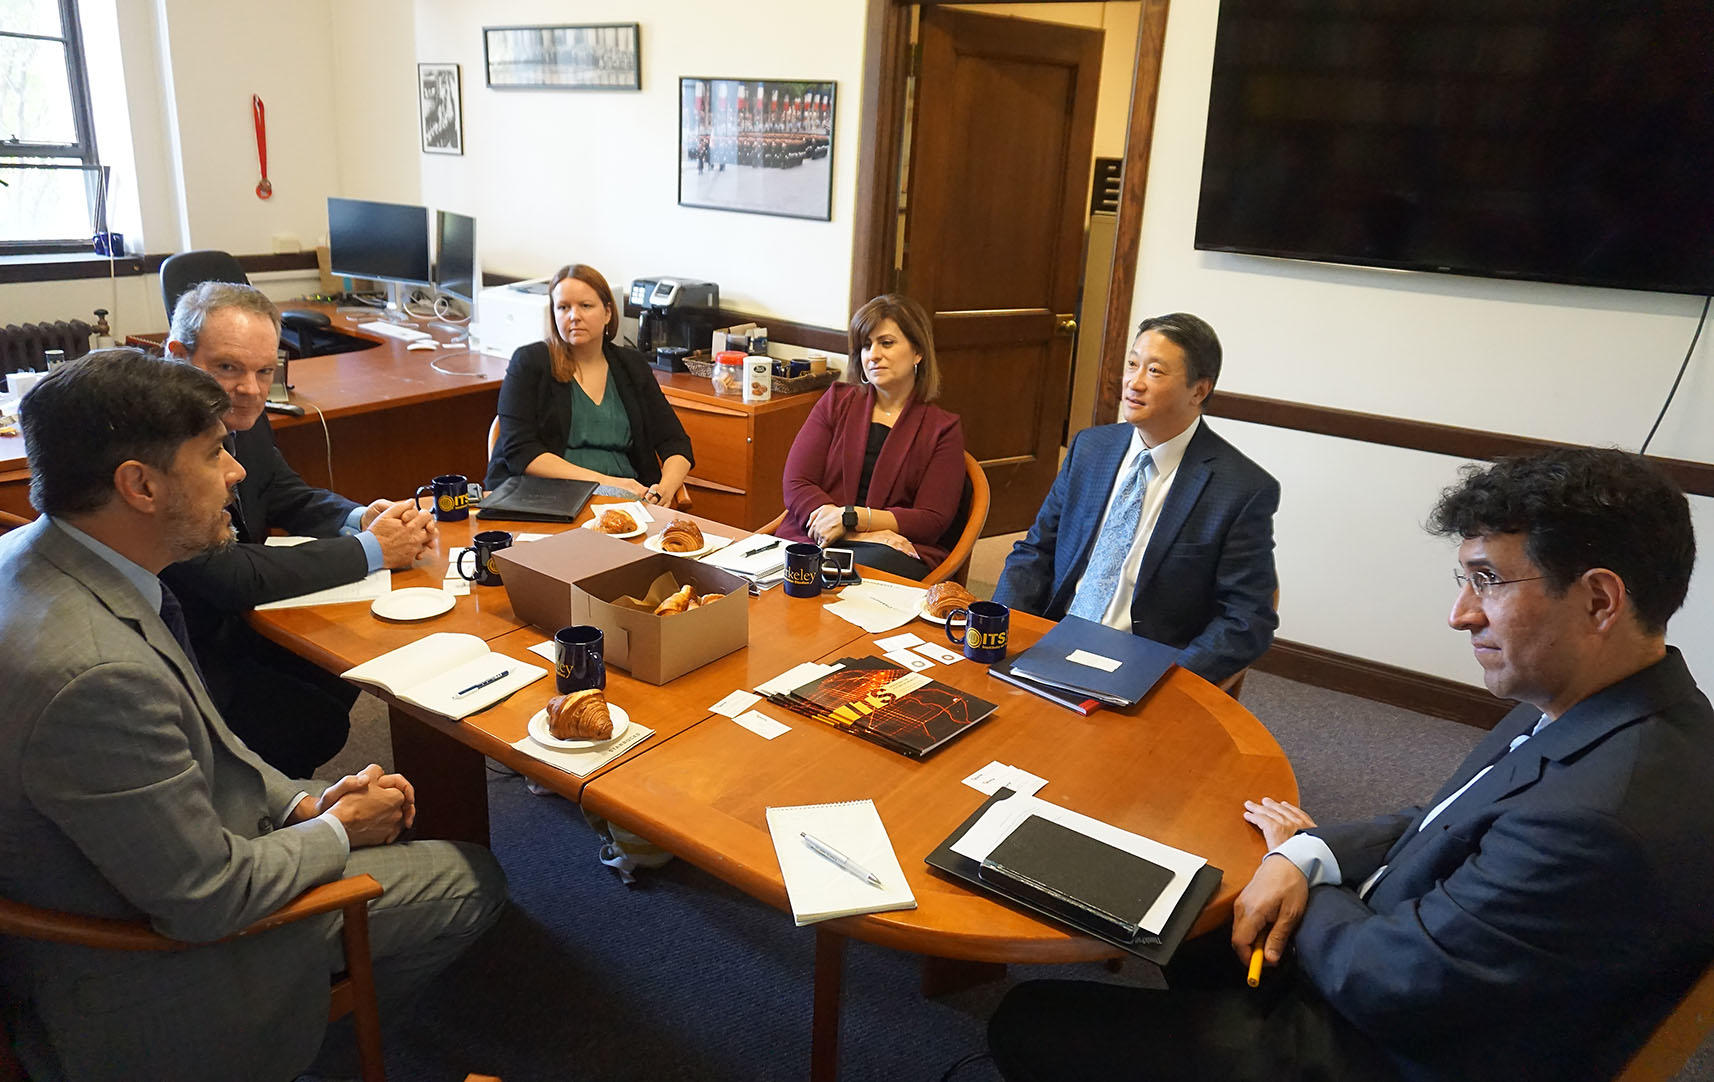 CalSTA Secretary David Kim, Deputy Secretary of Communications, Strategic Planning Melissa Figueroa, Deputy Secretary for Legislation Melanie Perron, met with ITS Director Alexandre Bayen, Associate Director Daniel A. Rodriguez, and PATH Director Tom West